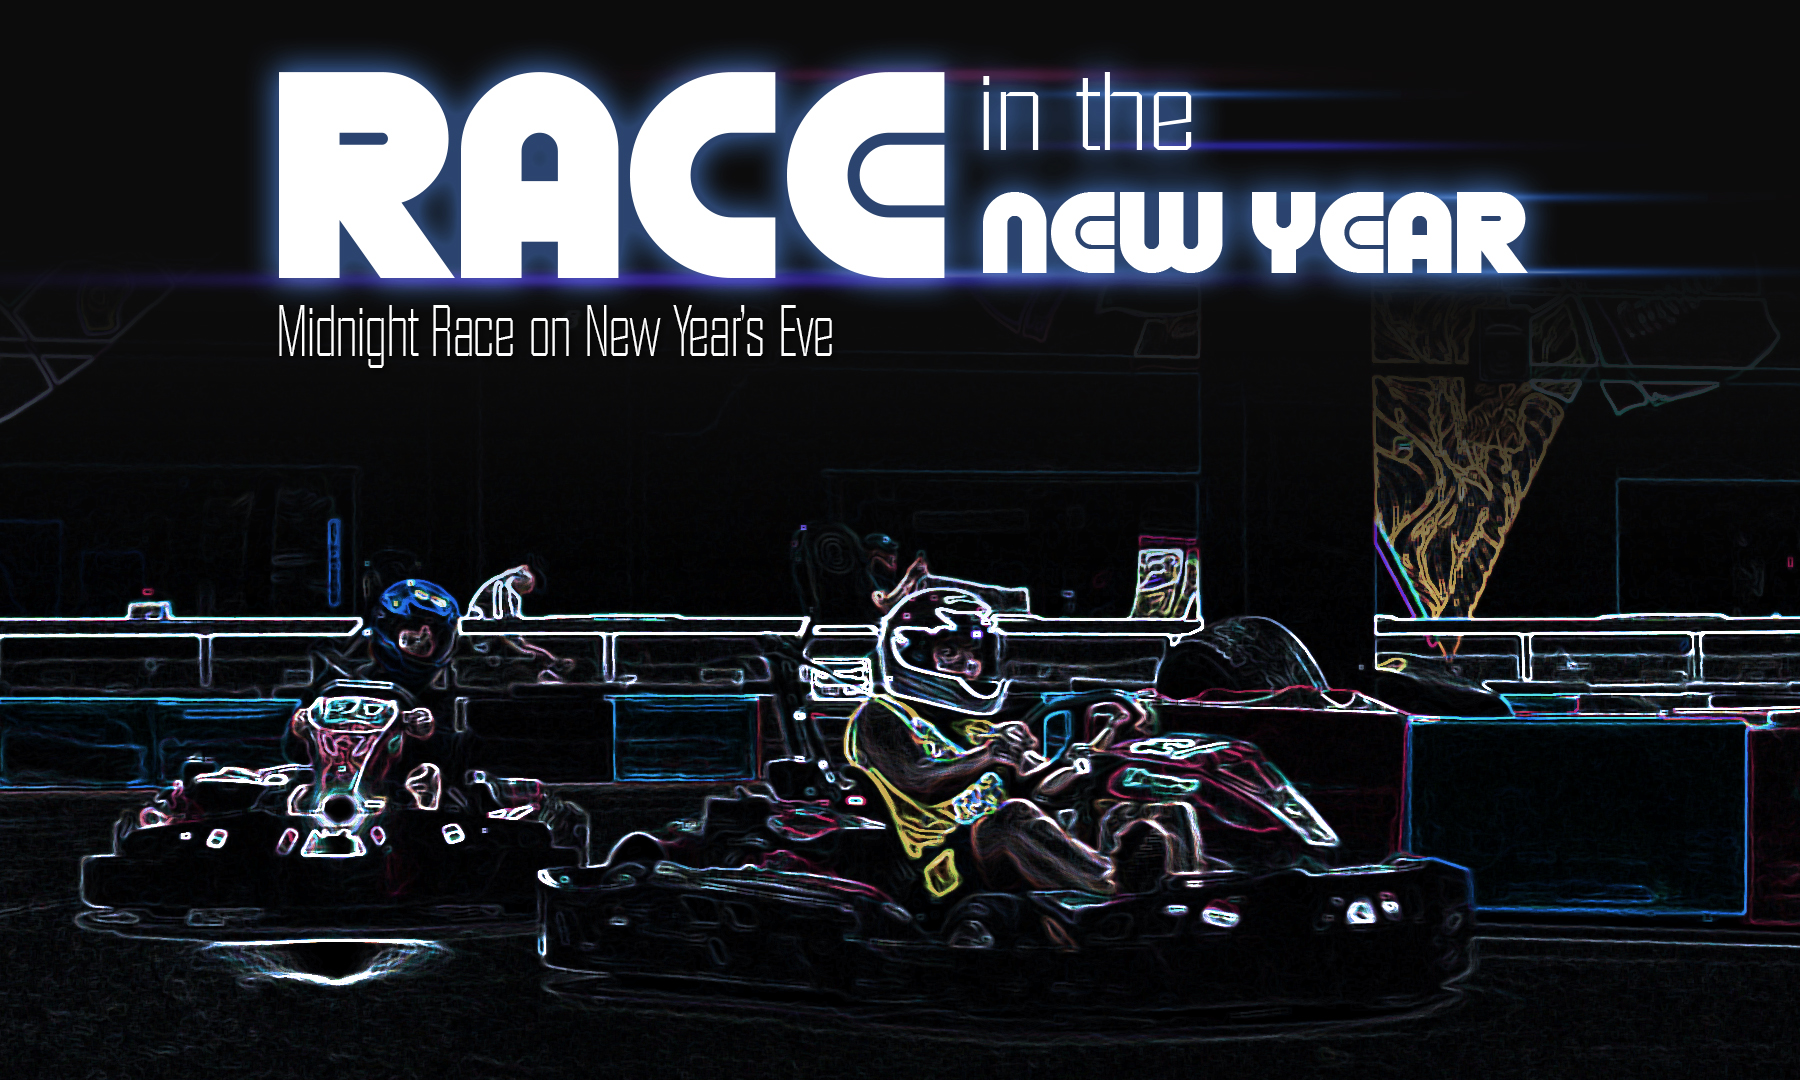 New YEar Eve Race at Xtreme 2020